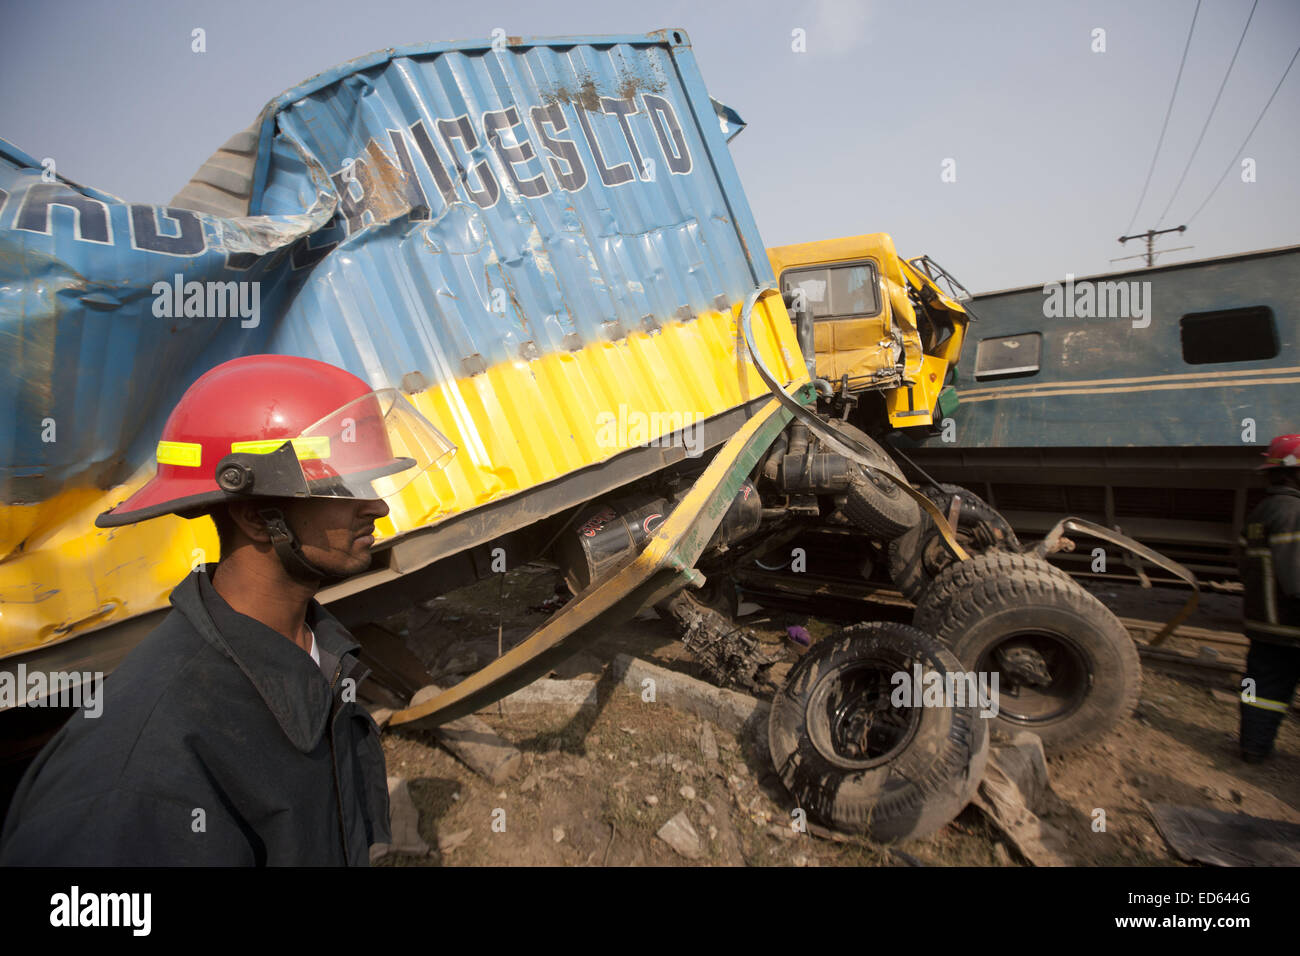 Dec. 29, 2014 - Dhaka, Bangladesh - Resuce workers at the scene after at least six people, including a woman, have - Stock Image